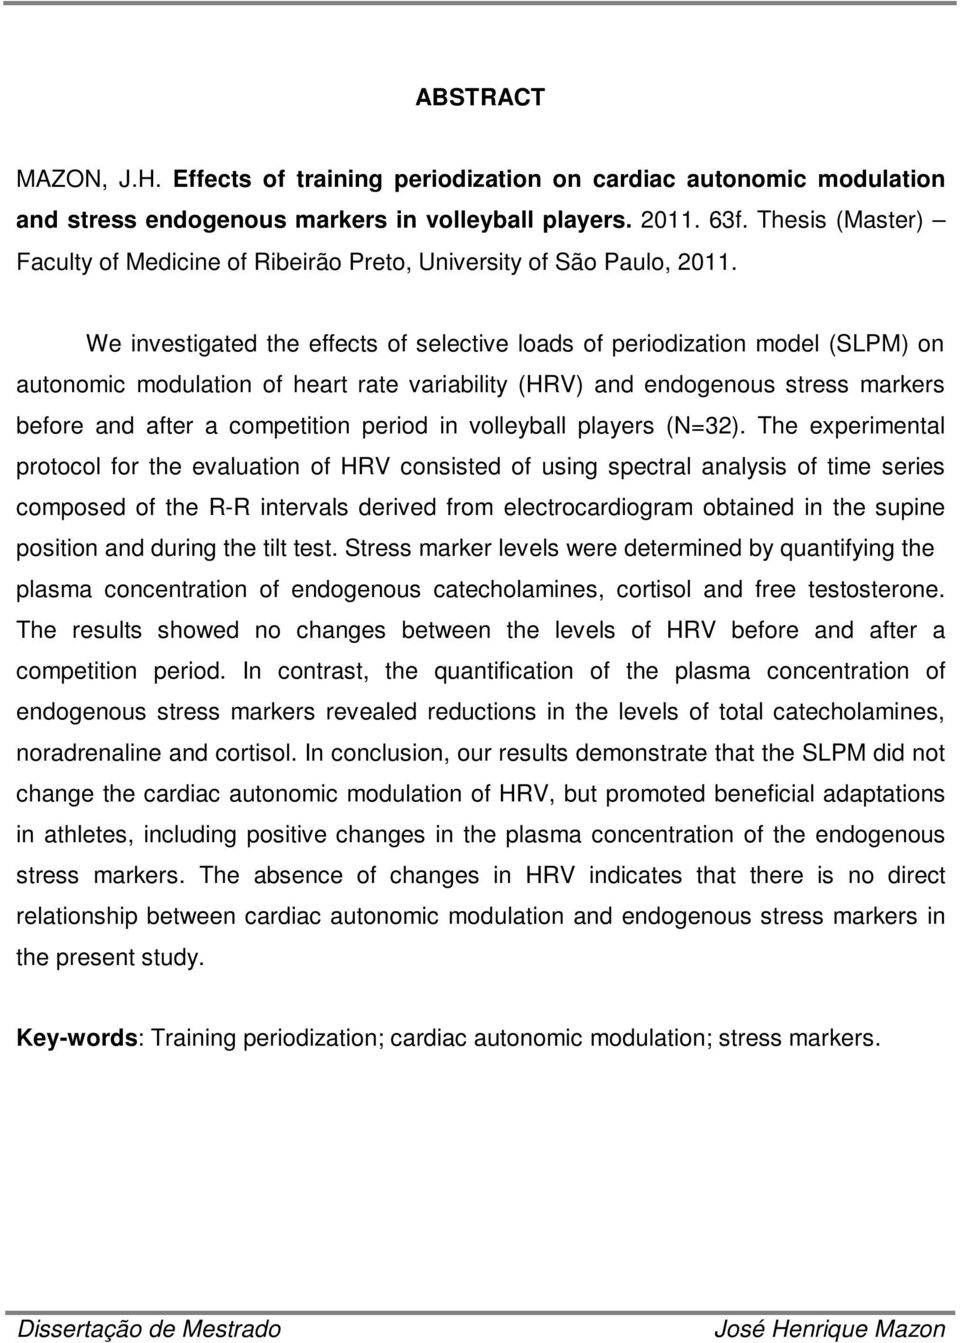 We investigated the effects of selective loads of periodization model (SLPM) on autonomic modulation of heart rate variability (HRV) and endogenous stress markers before and after a competition